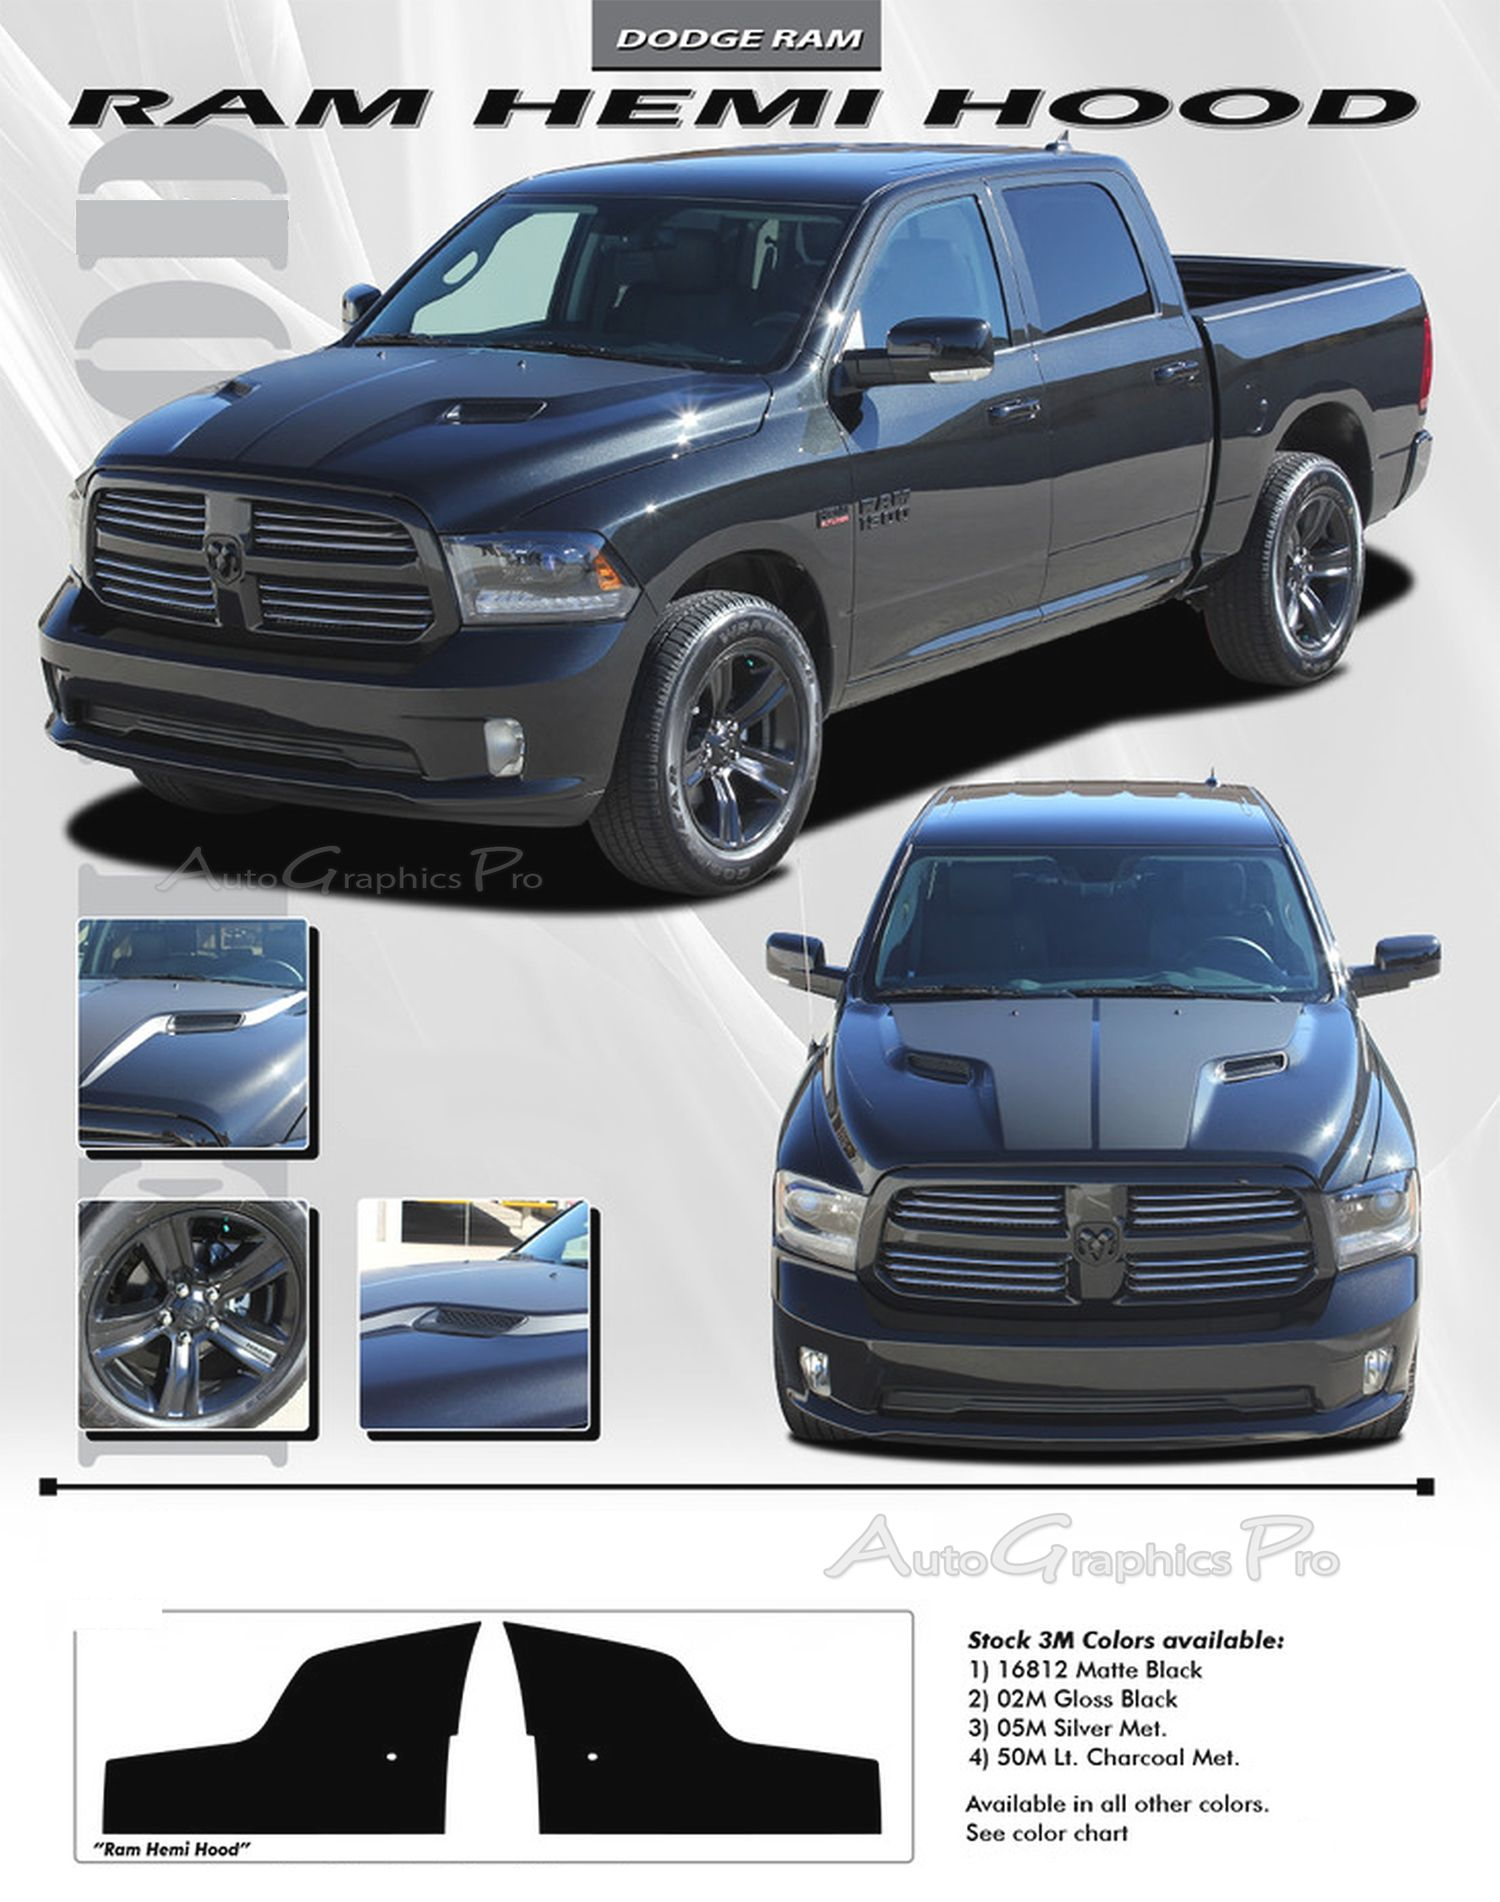 Vinyl Graphic Stripes Decals Kits Vehicle Specific Accent Striping - Truck bed decals custombody graphicsdodge ram